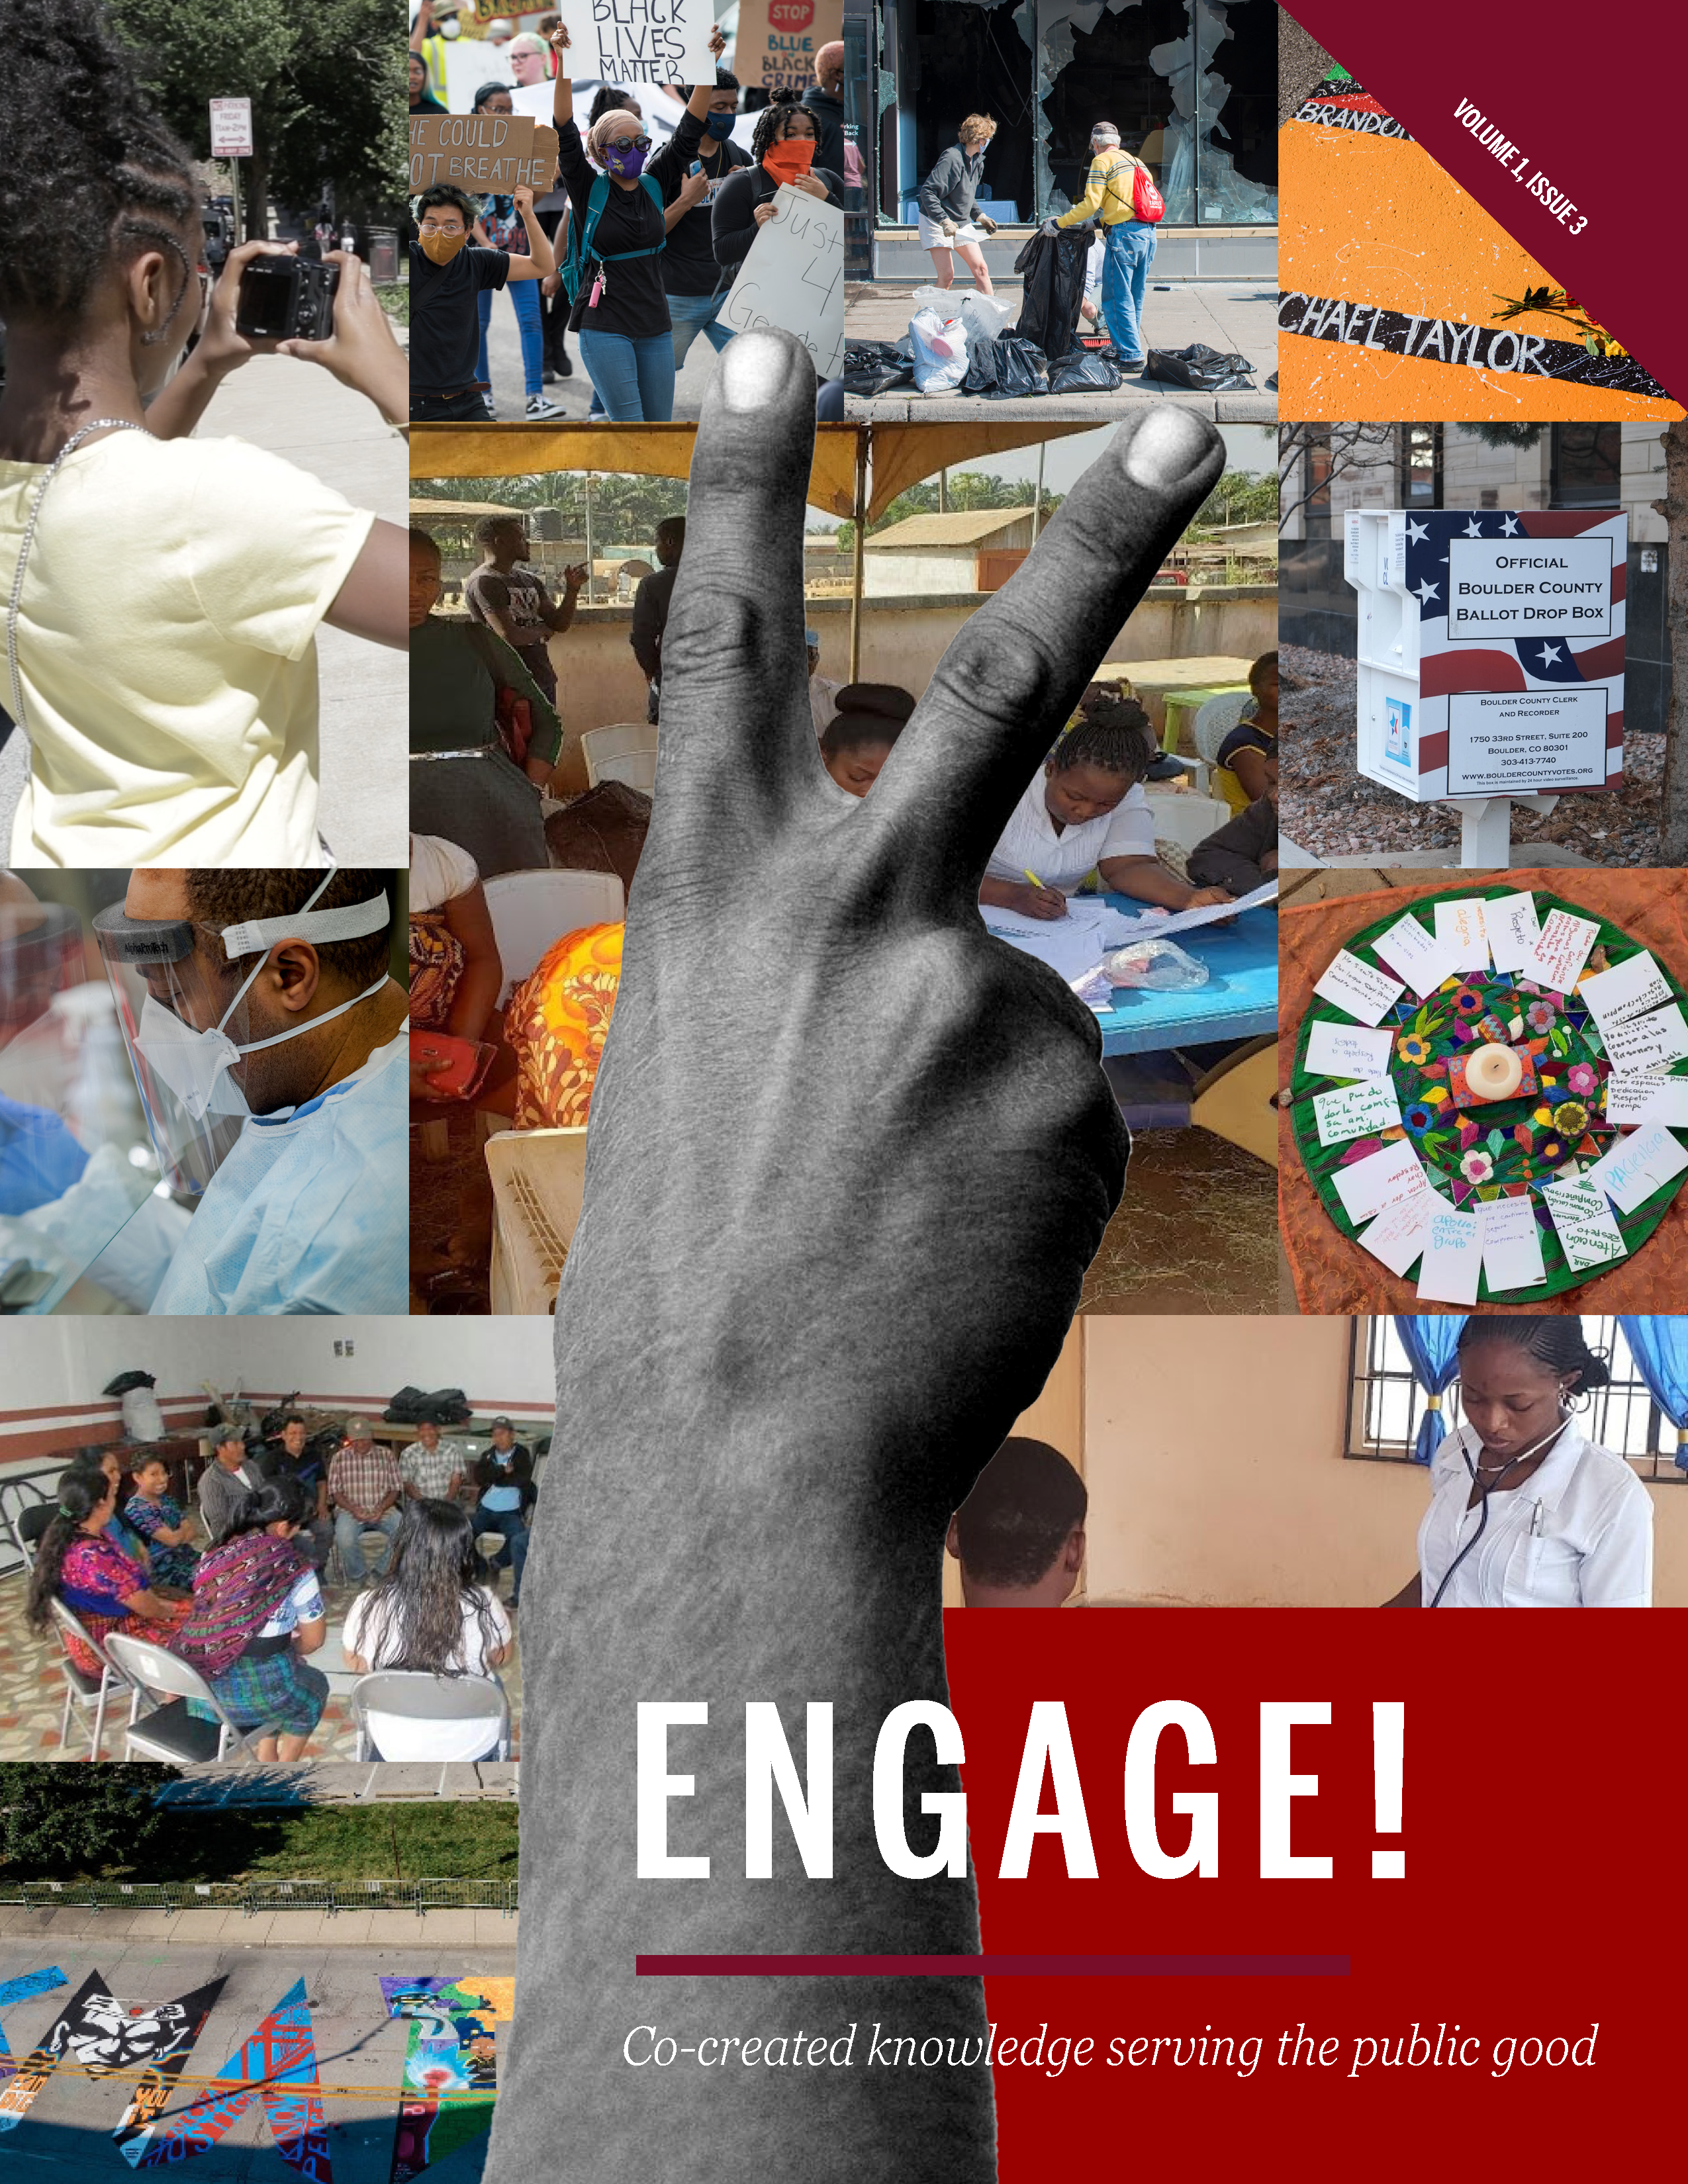 View Vol. 1 No. 3 (2020): ENGAGE! Co-created knowledge serving the public good